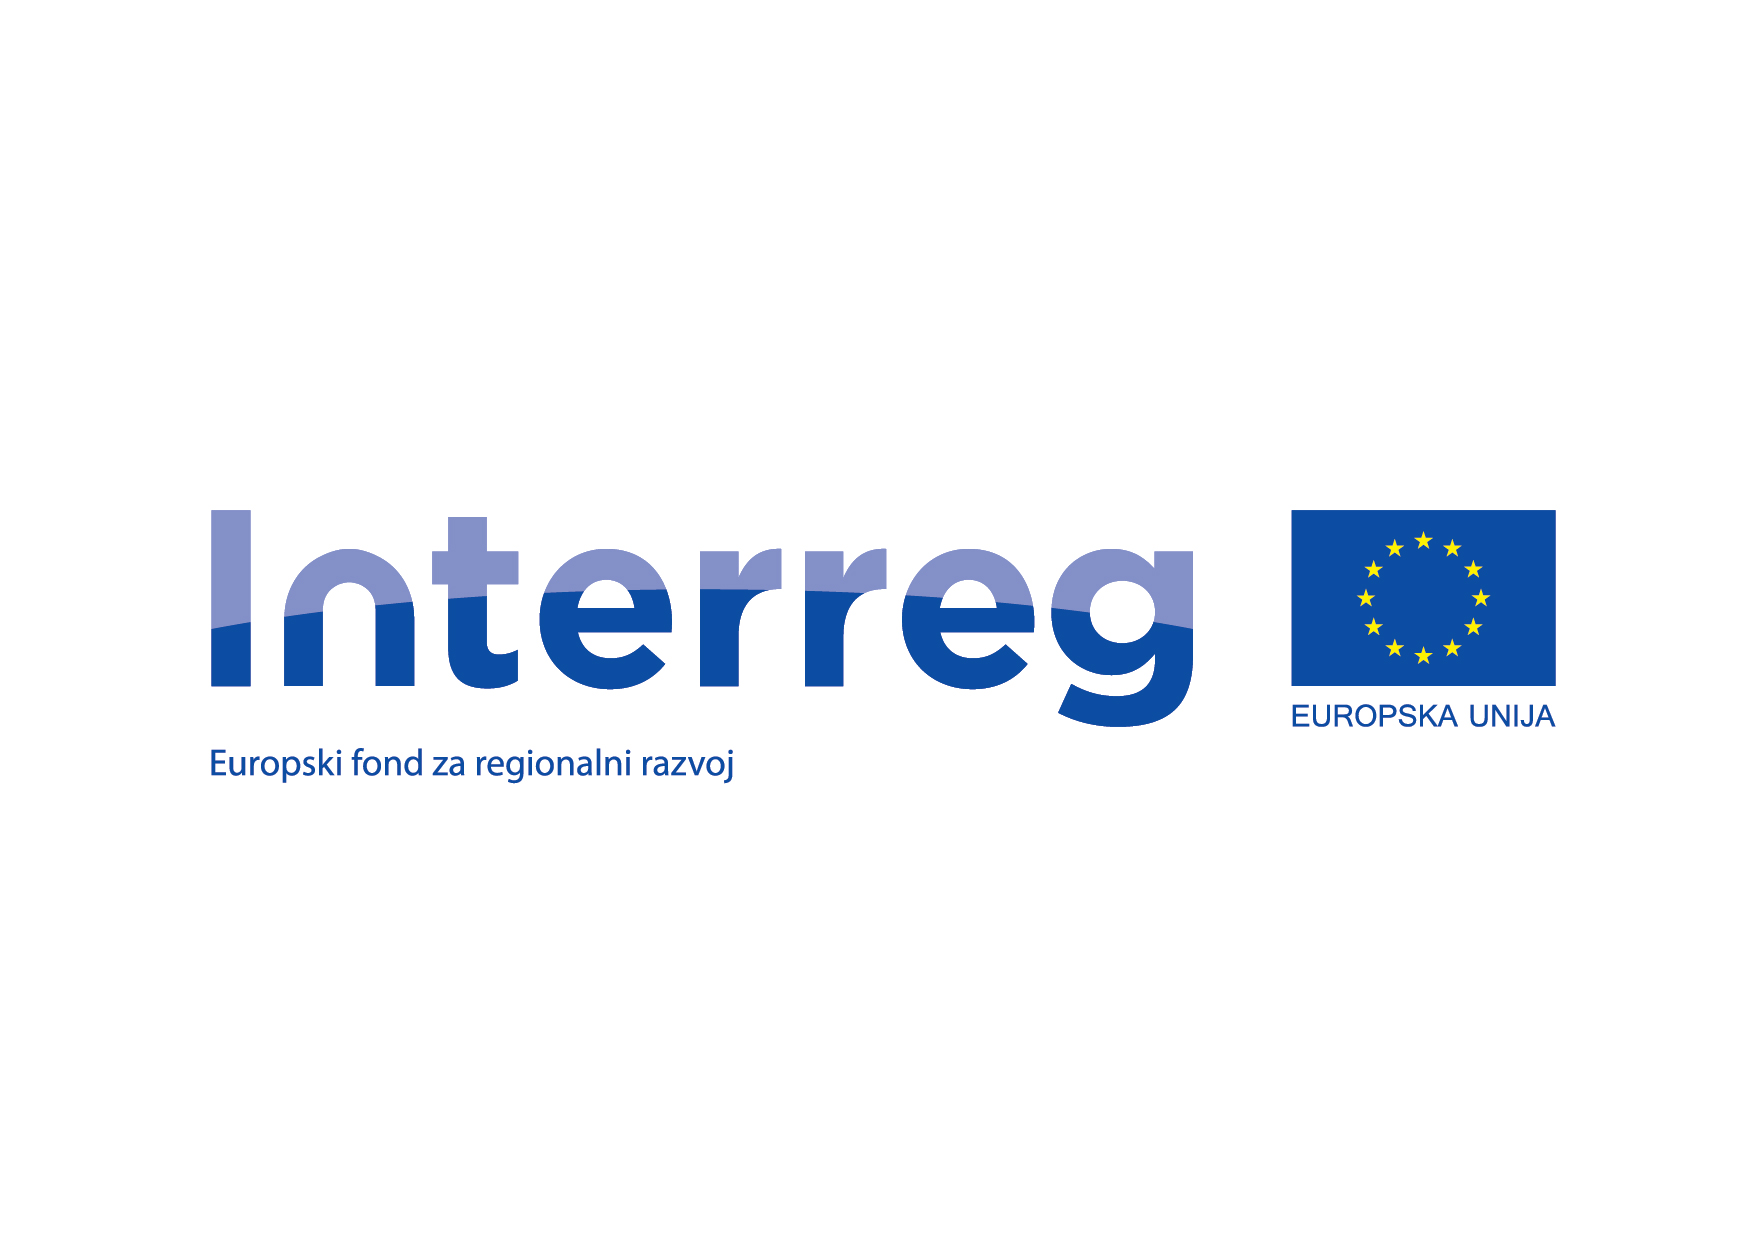 INTERREG LOGO HR